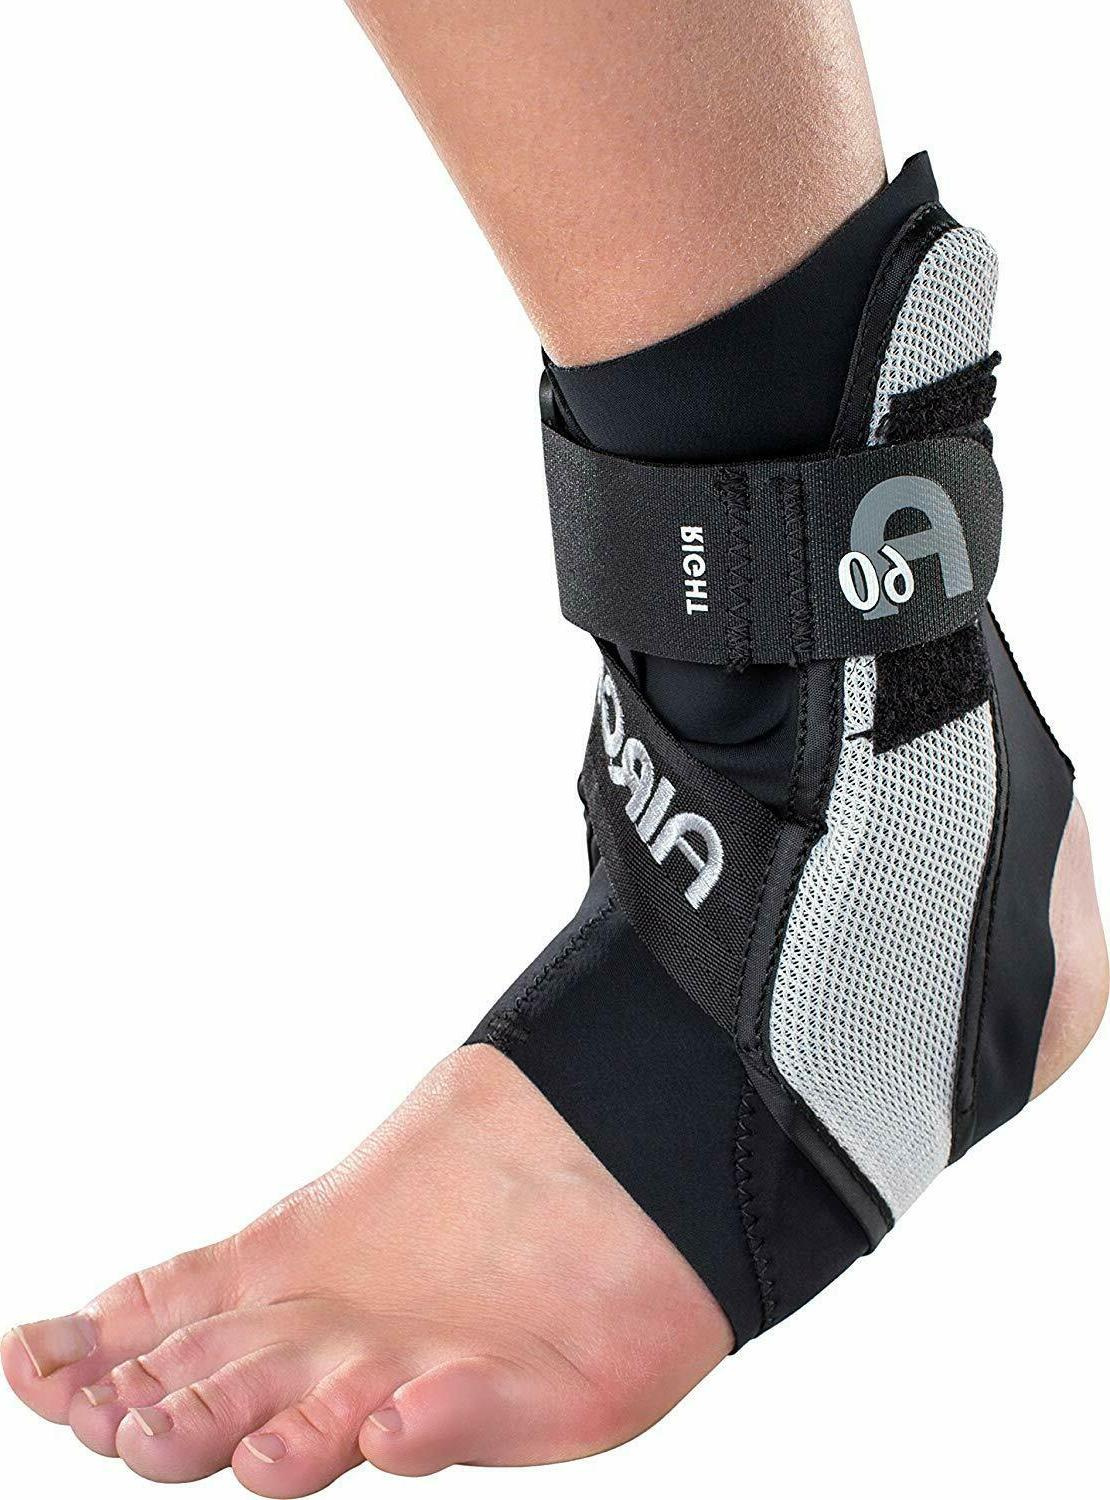 donjoy a60 ankle support brace